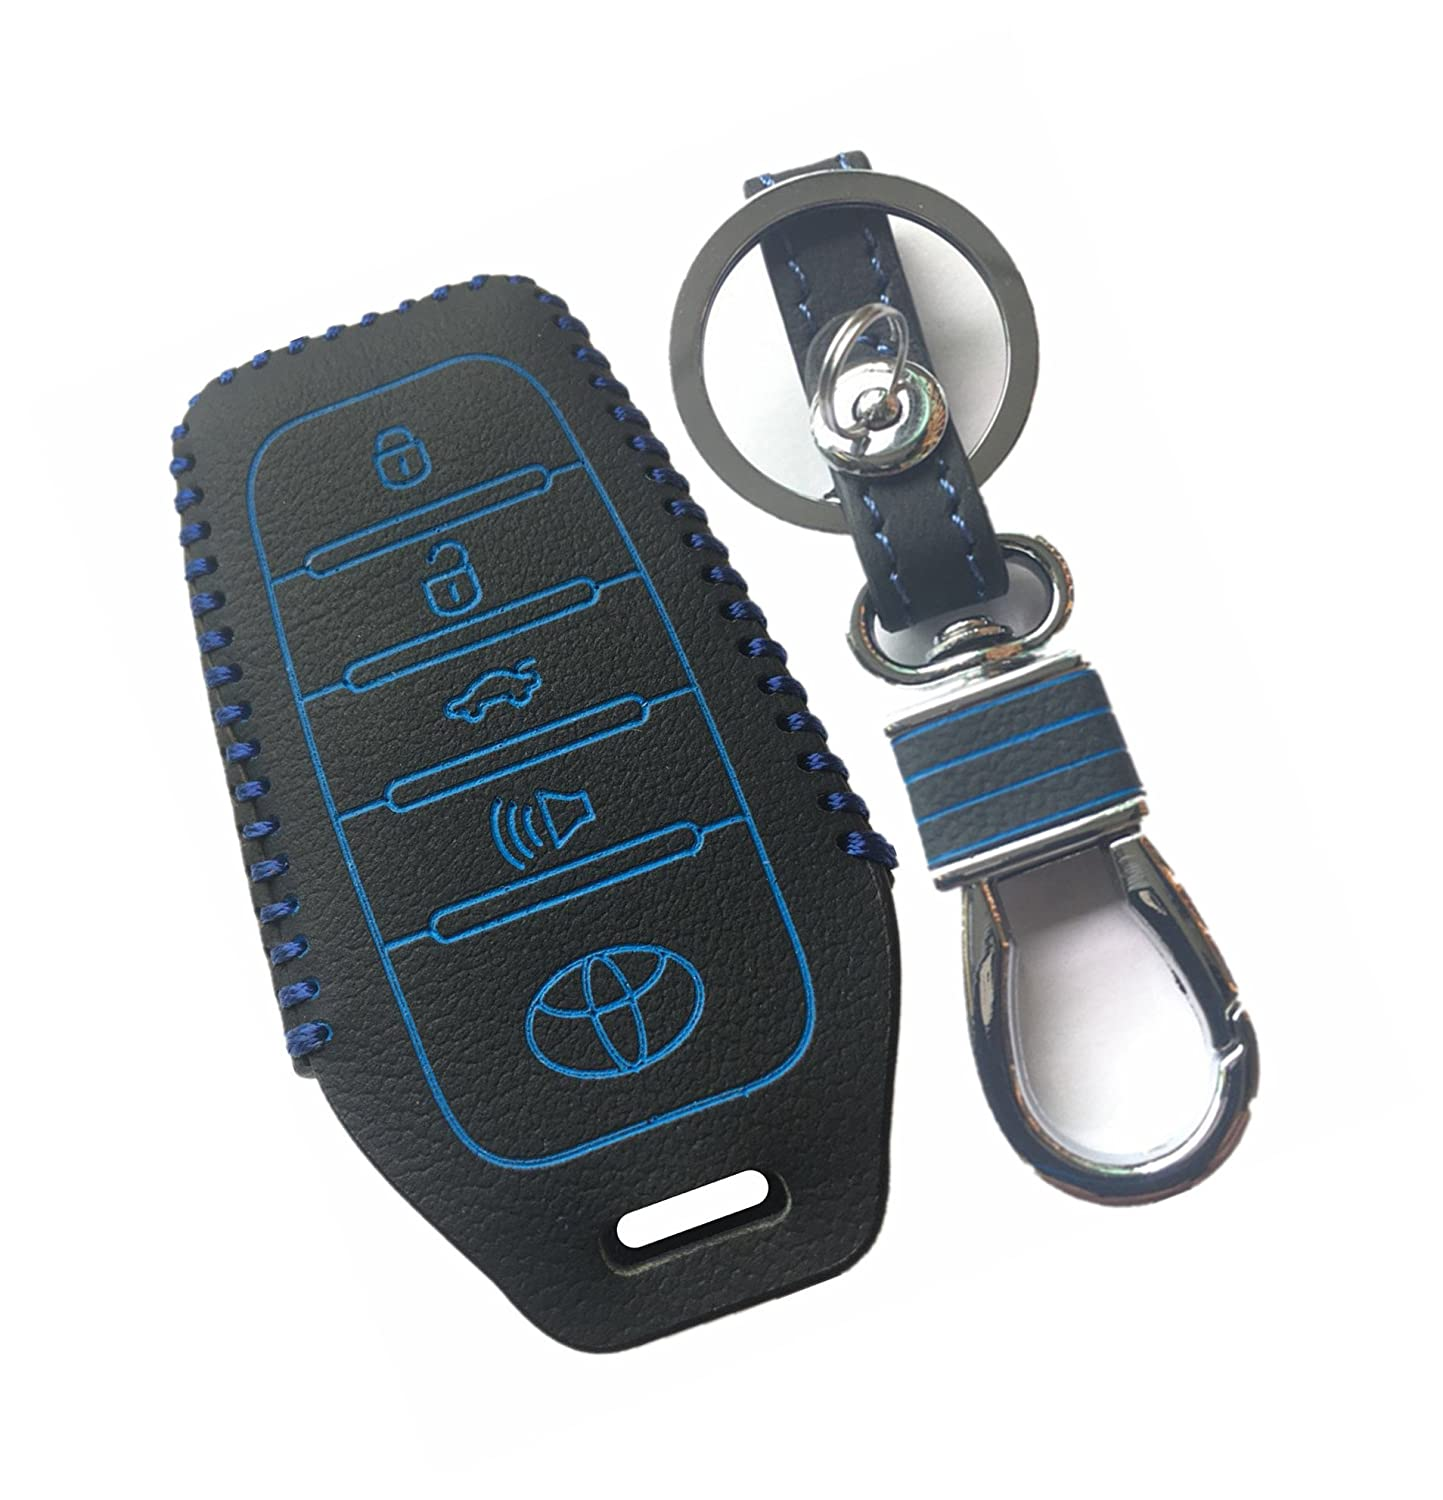 2017 toyota highlander key fob replacement